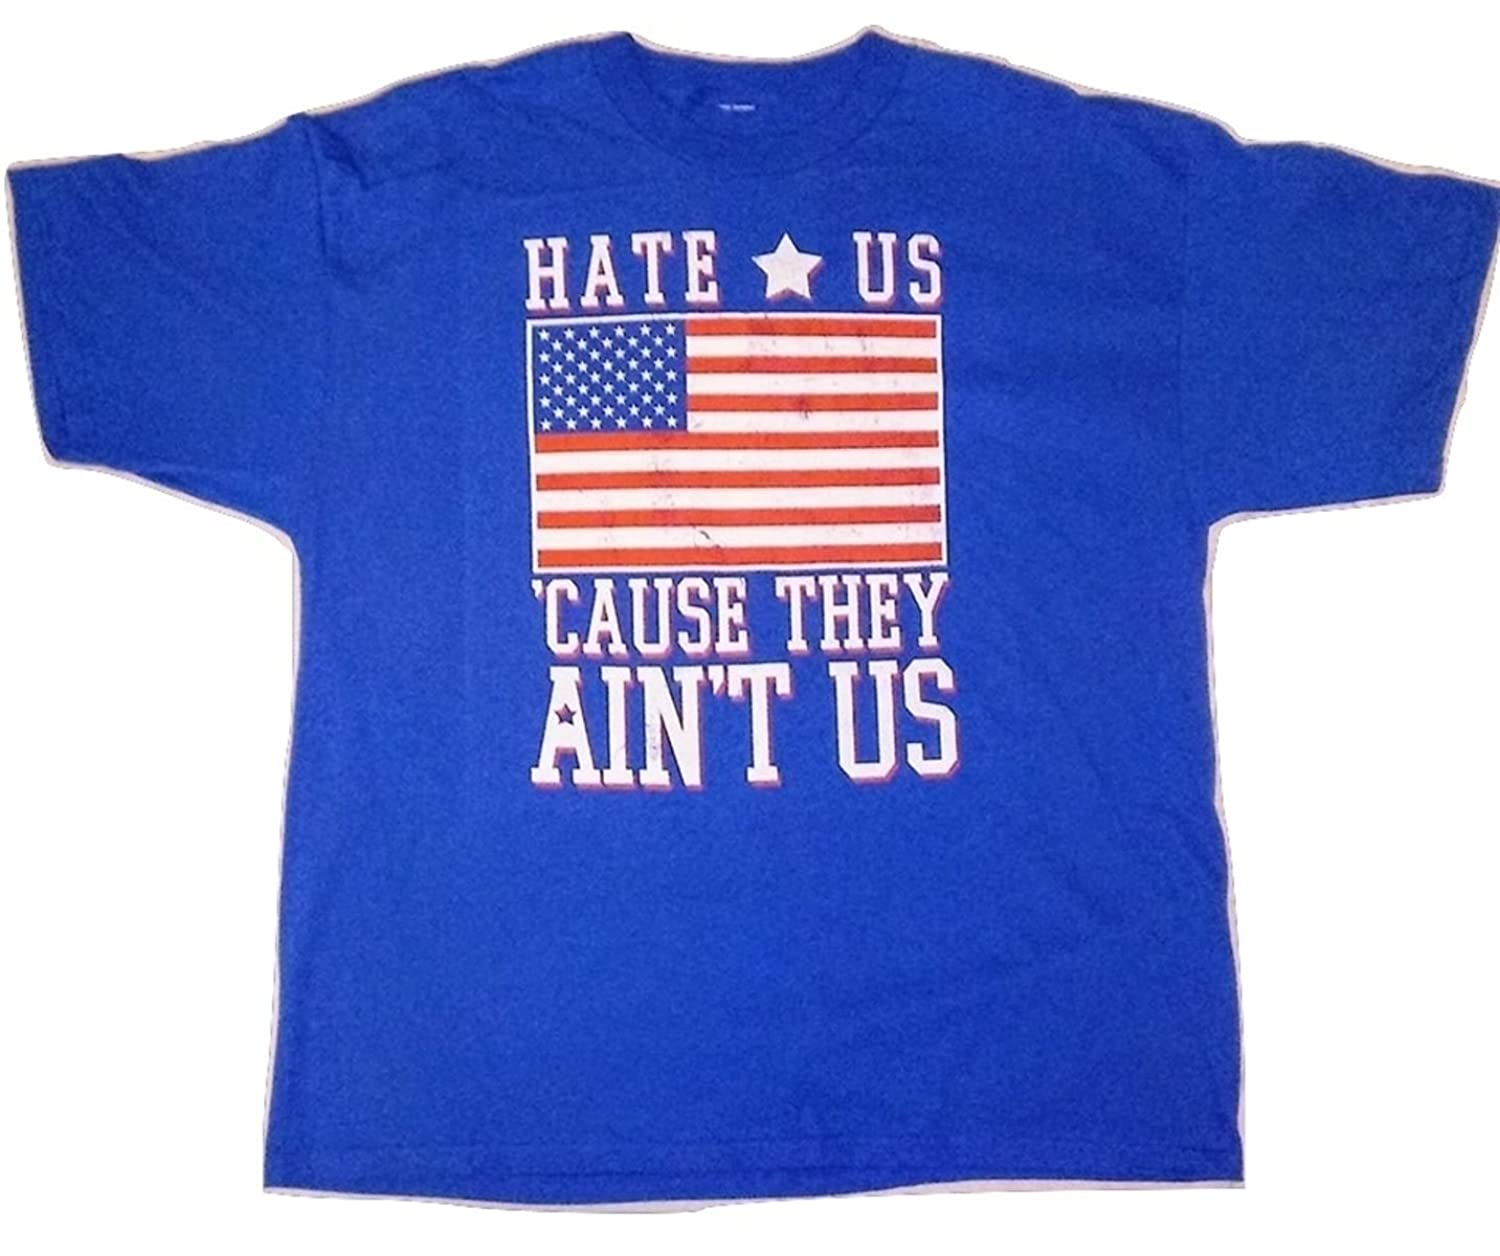 Mens Hate Us Cause They Aint Us American Flag Short Sleeve Tee Shirts Top Graphic T Shirt